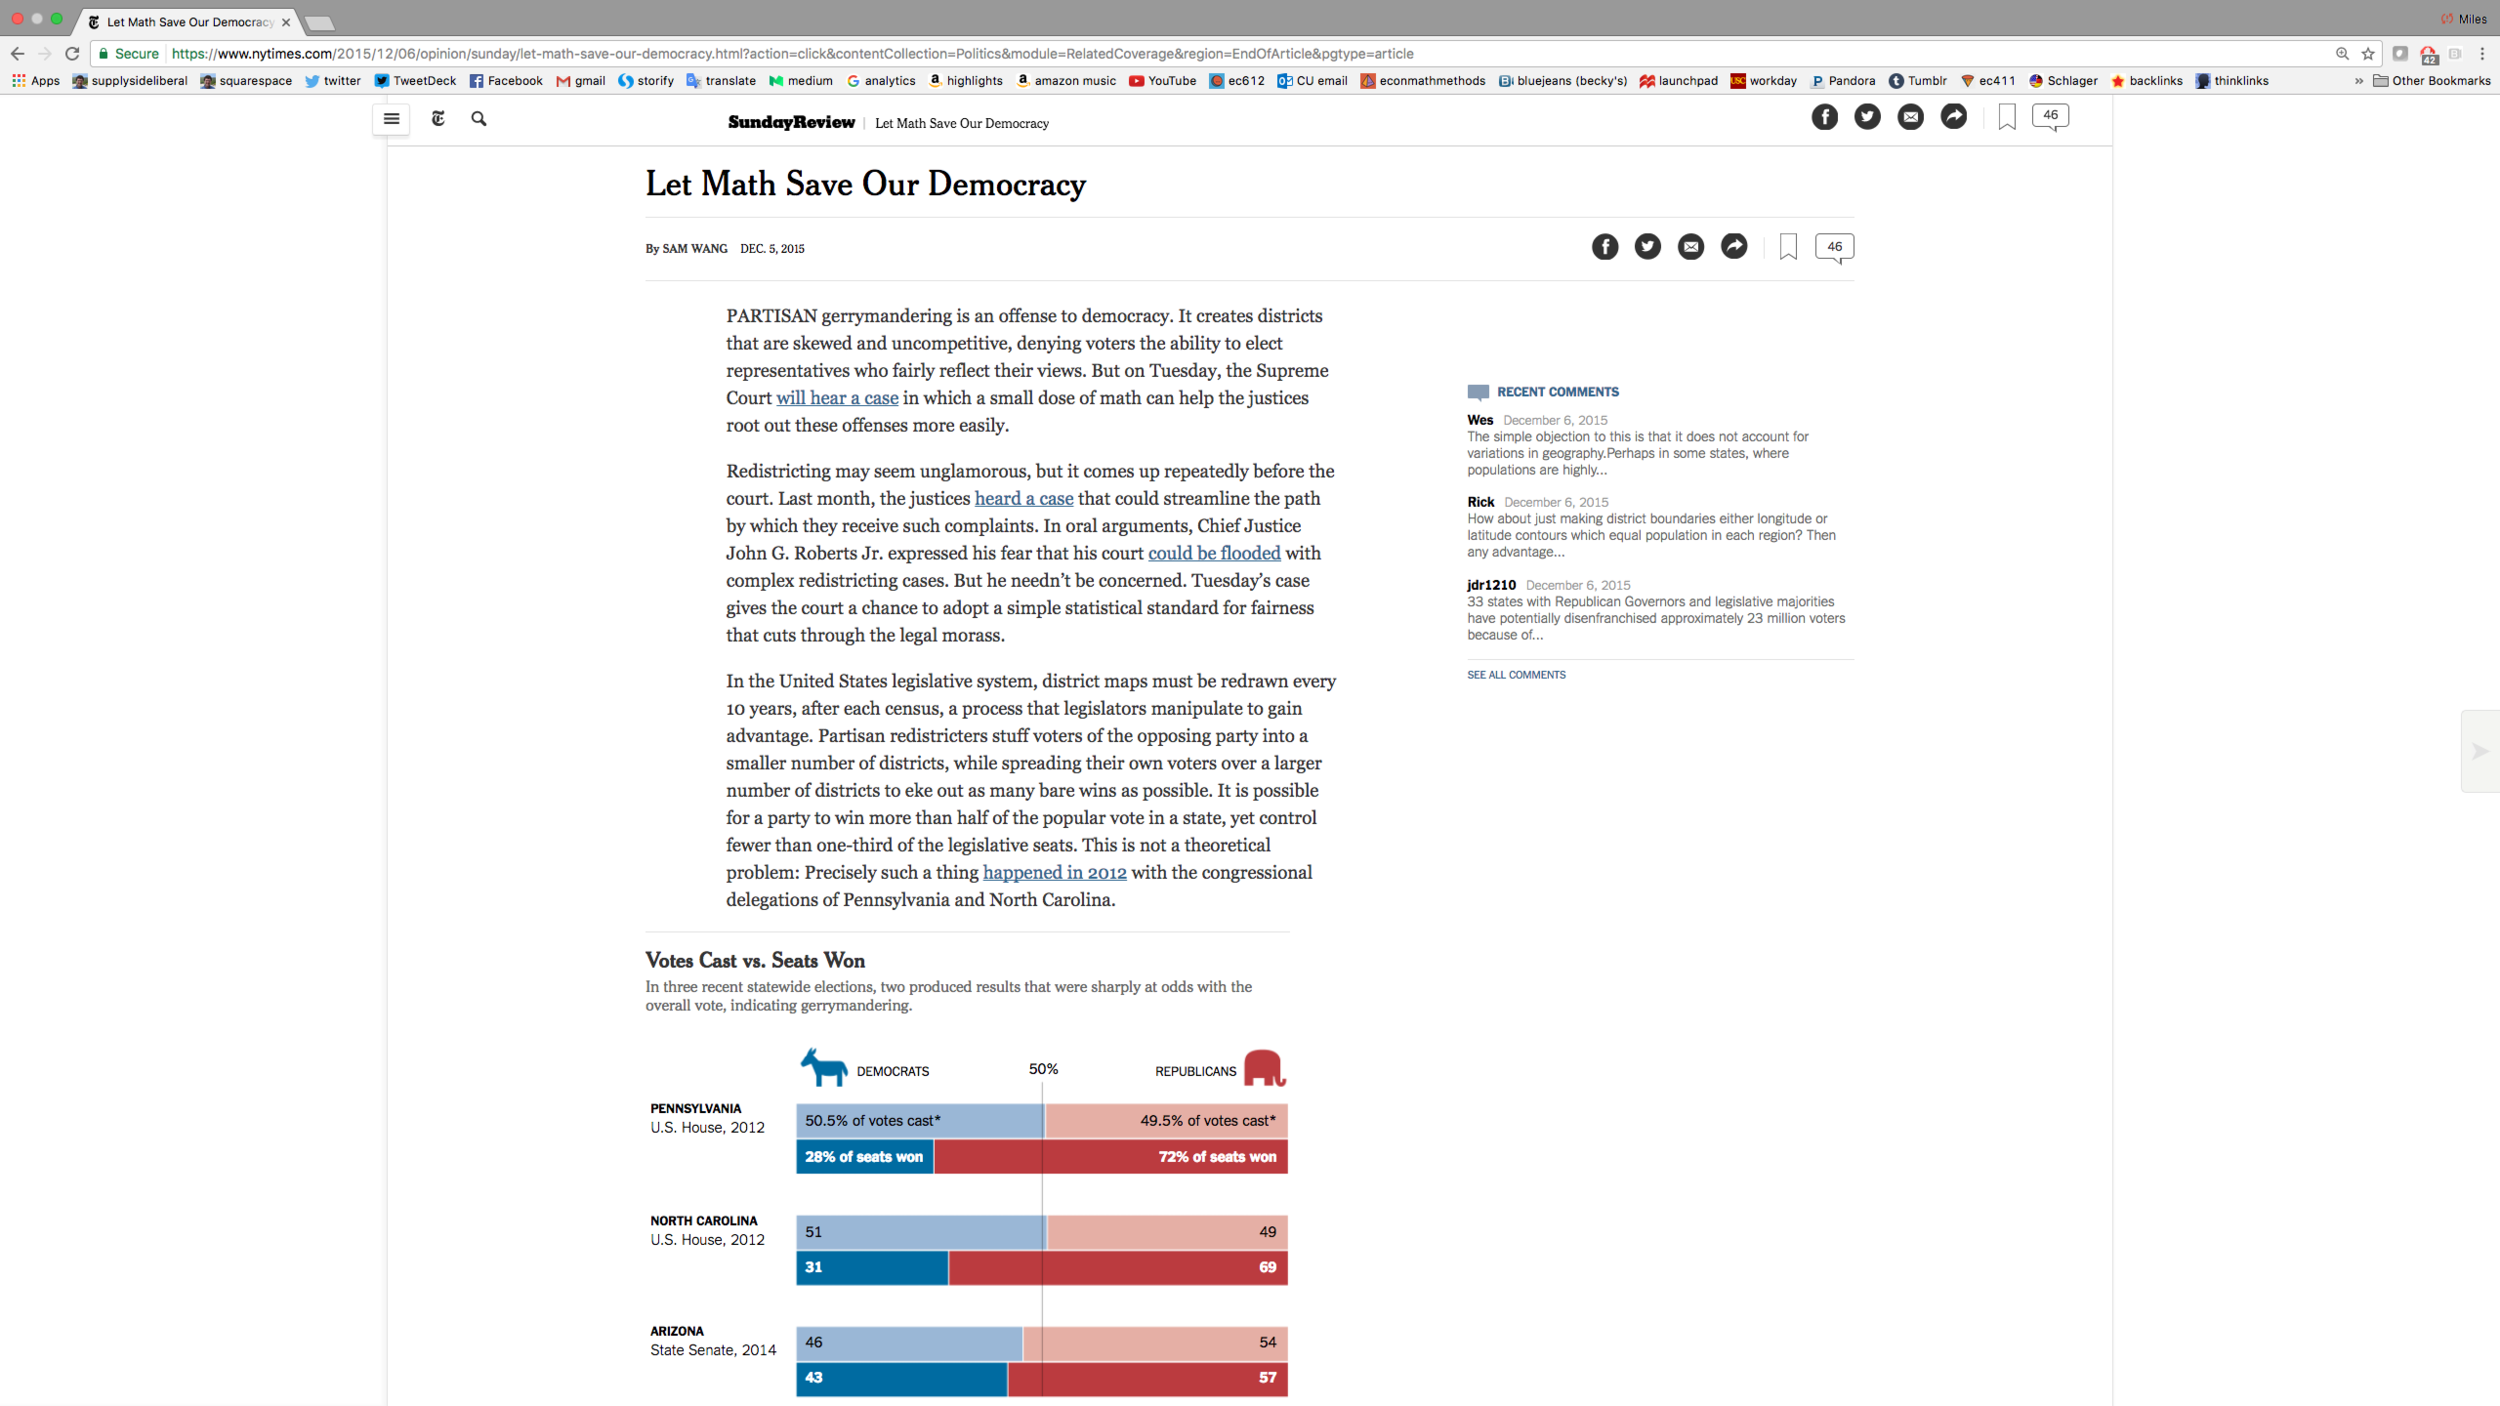 """Link to Sam Wang's December 5, 2015 New York Times article """"Let Math Save Our Democracy"""""""